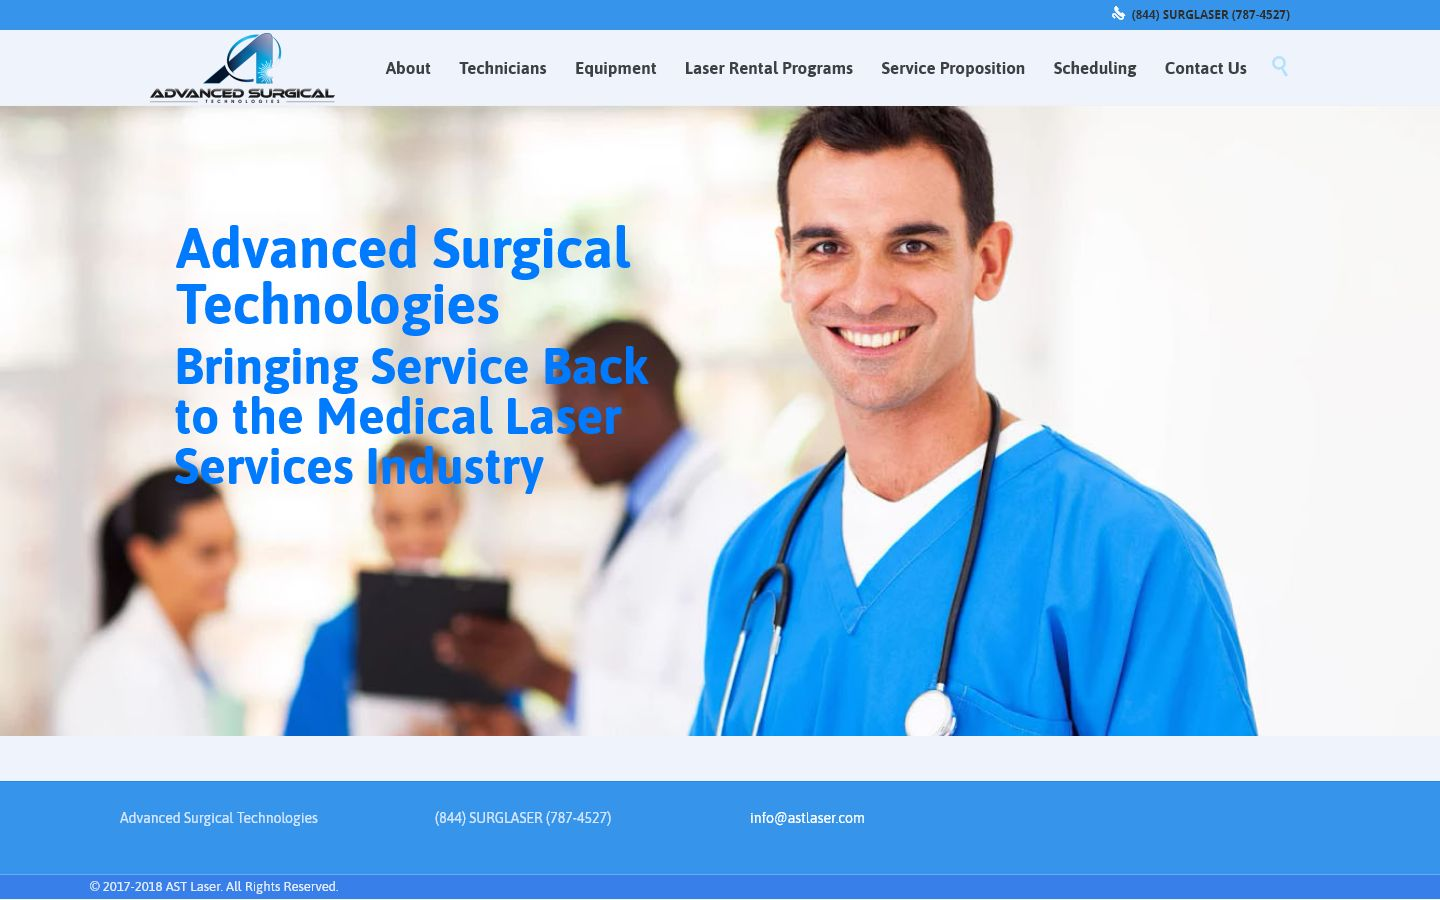 Advanced Surgical Technologies